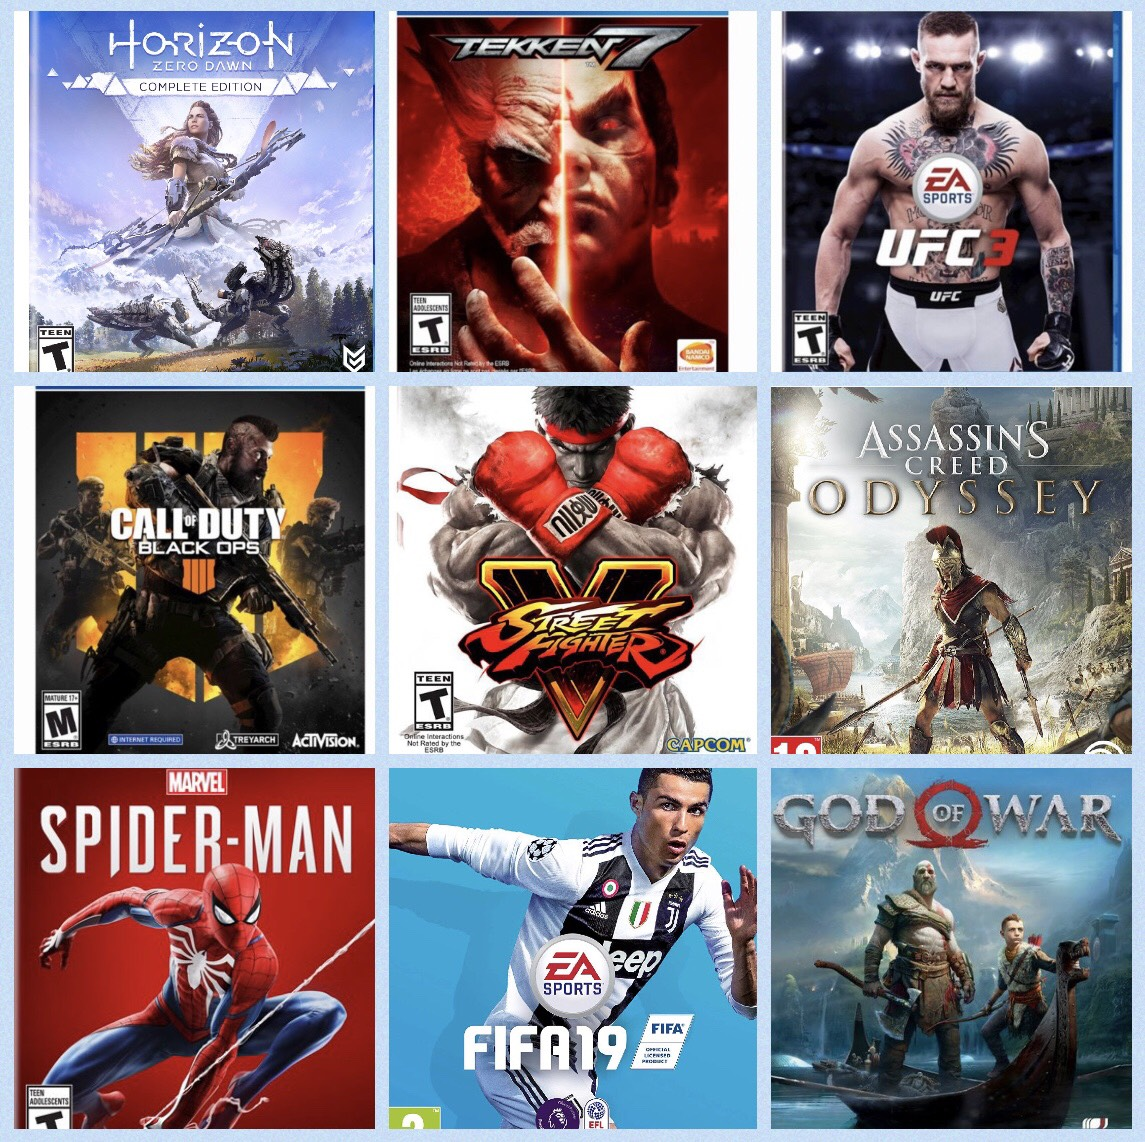 Rent any 3 Playstation 4 Games for 1 Month (Over 40 games to choose from) RENTAL